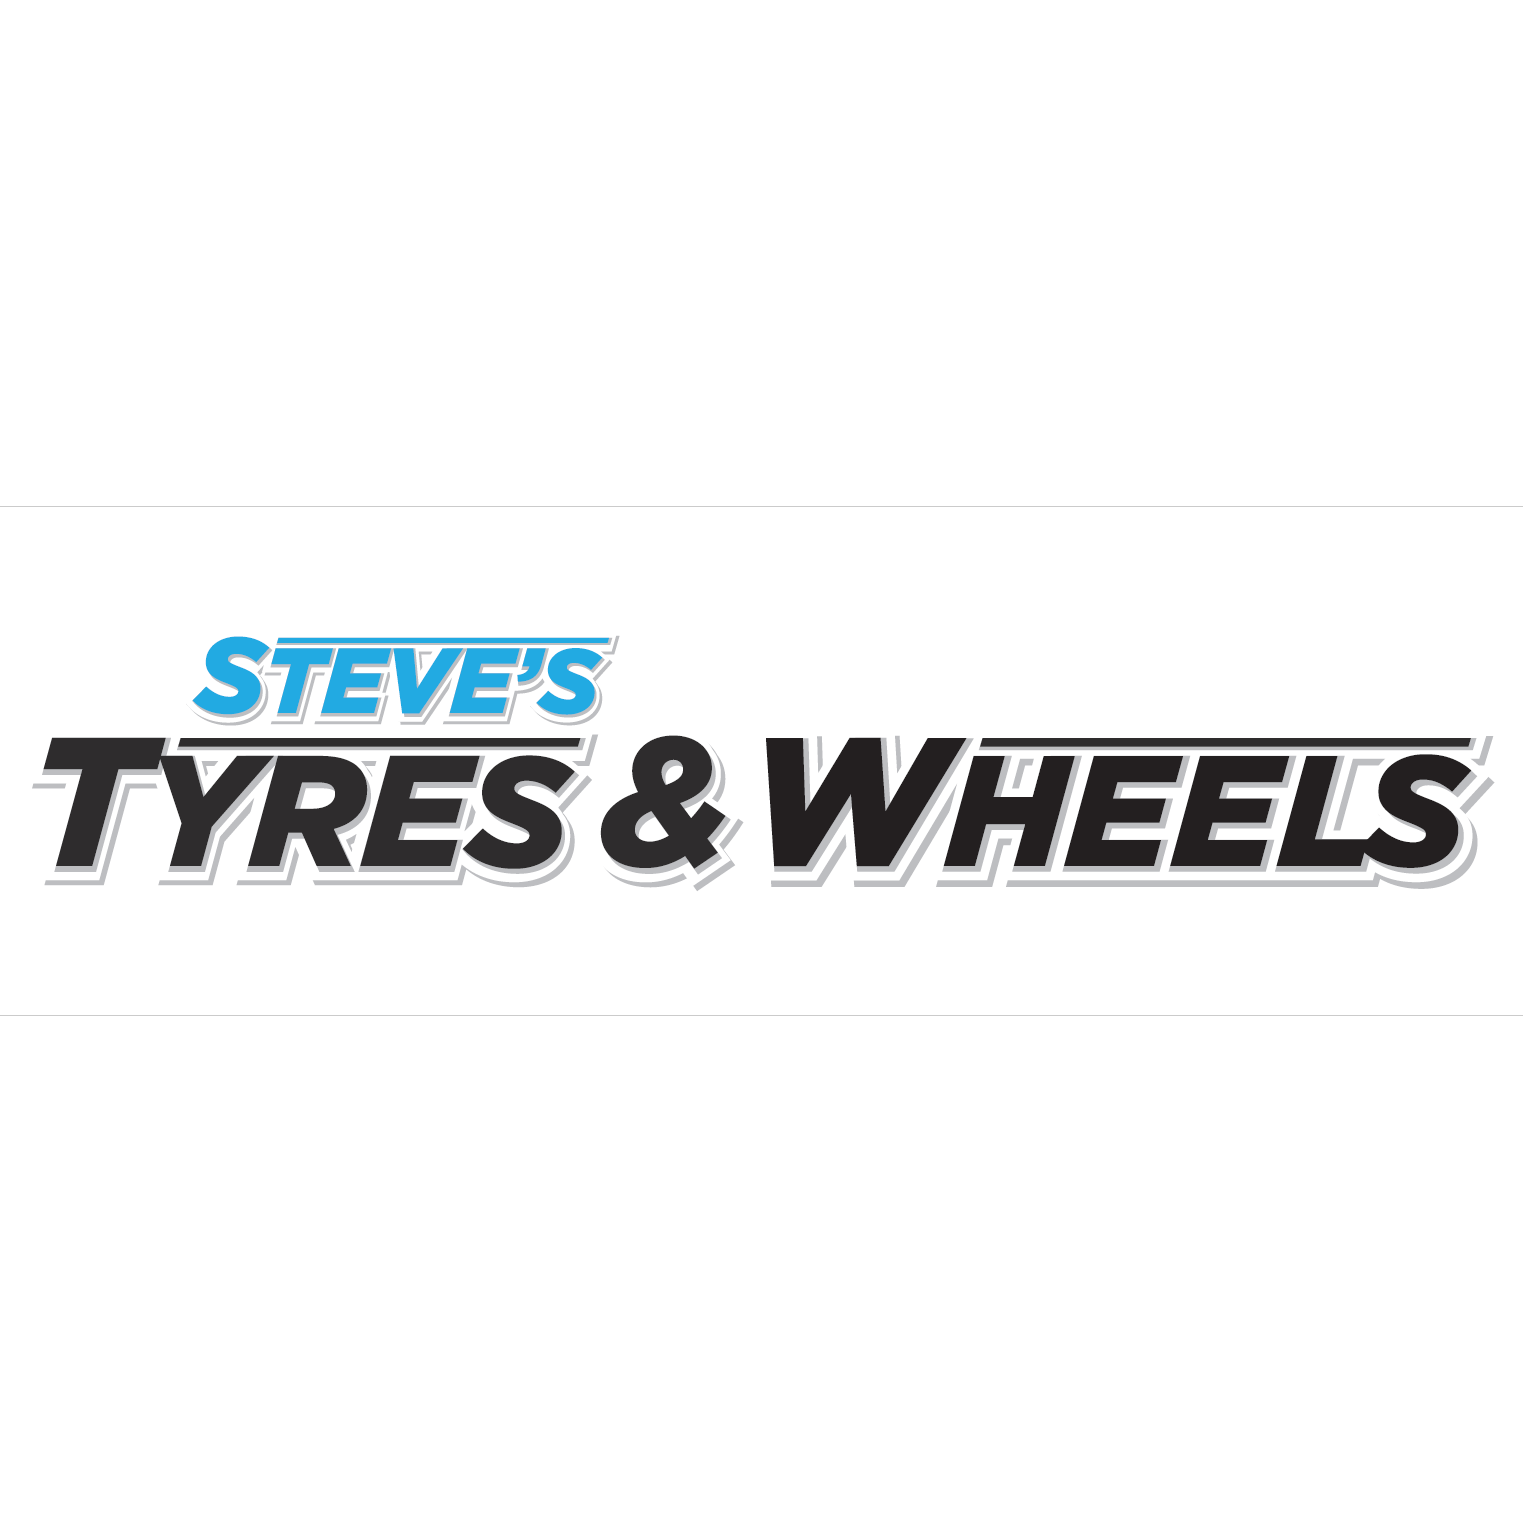 Steves Tyres & Exhausts - Buxton, Derbyshire SK17 6NE - 0129870011 | ShowMeLocal.com